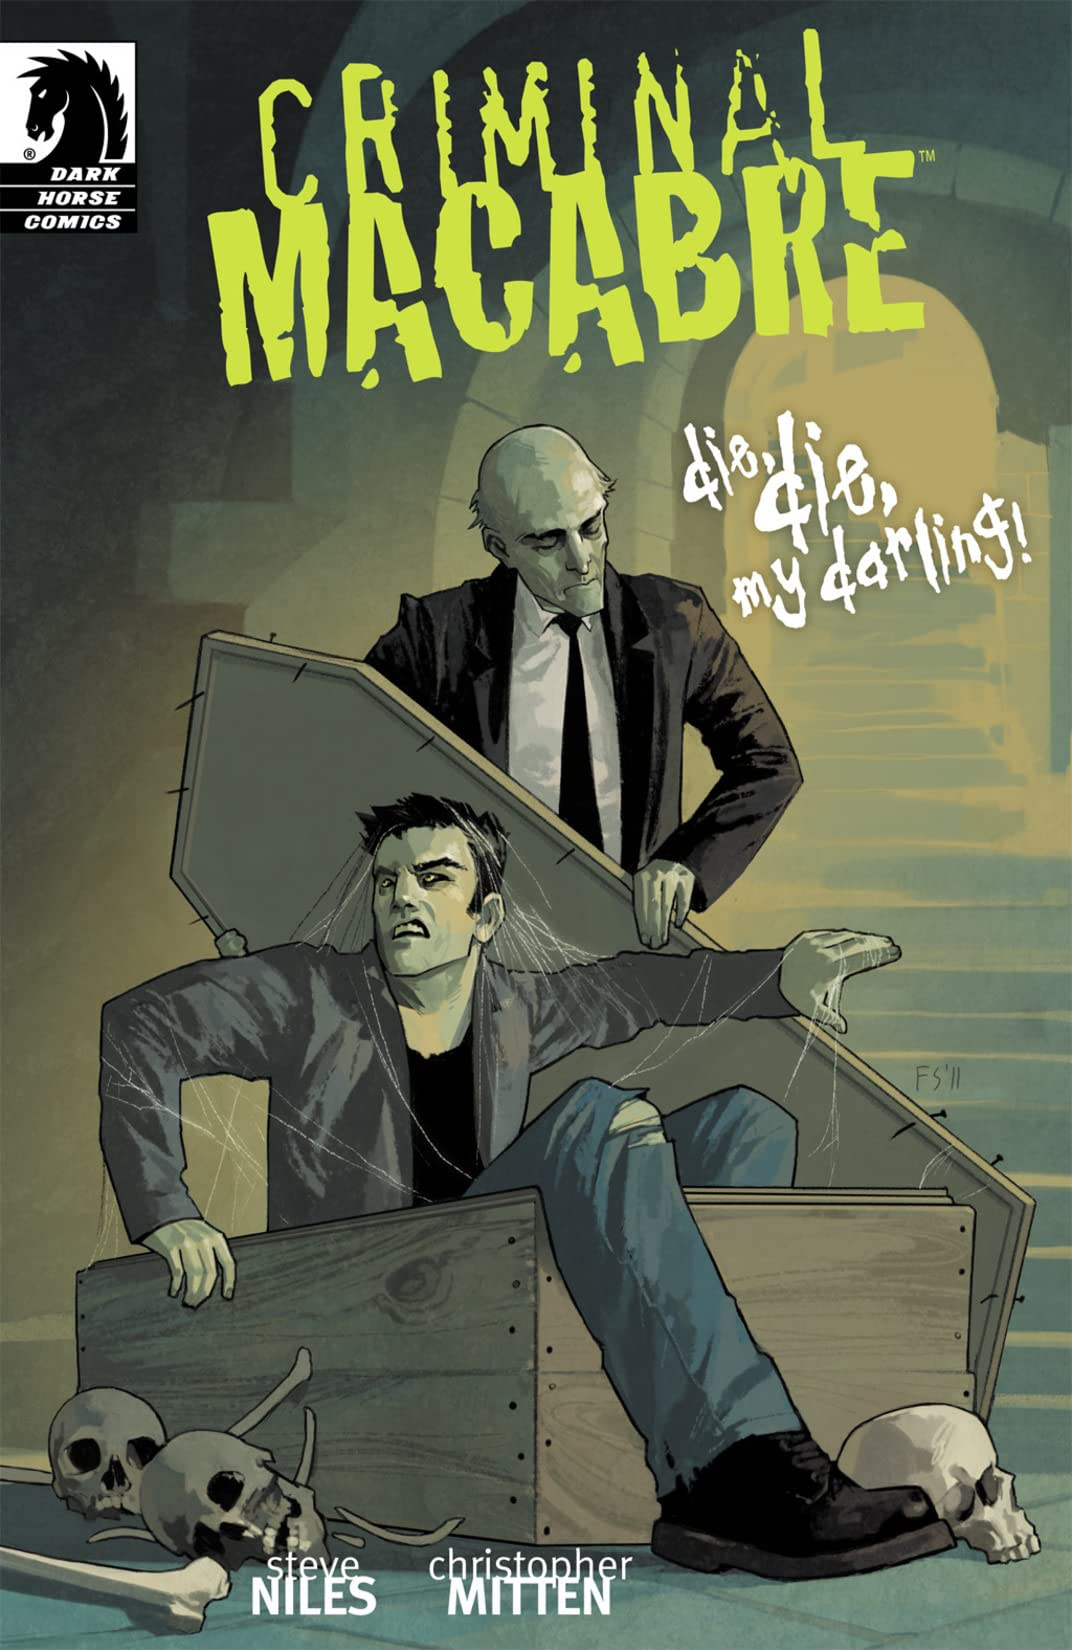 Criminal Macabre: Die, Die, My Darling #1